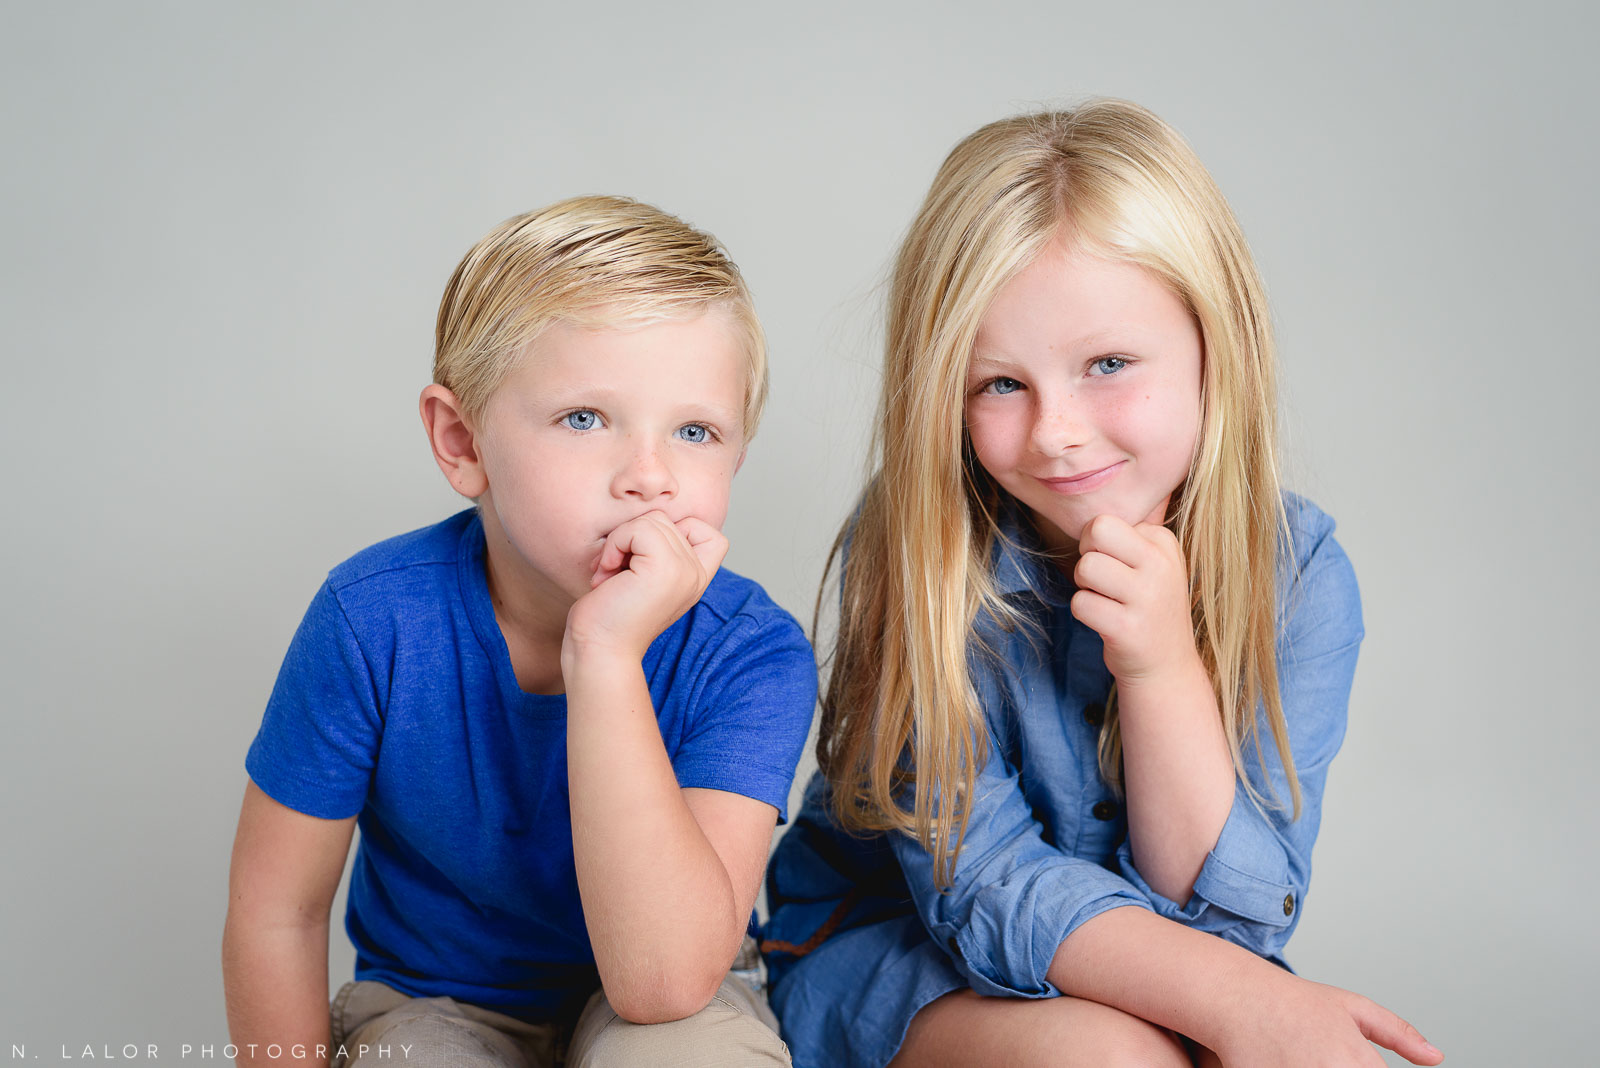 Brother and sister, being themselves. Studio photoshoot with N. Lalor Photography in Greenwich, Connecticut.